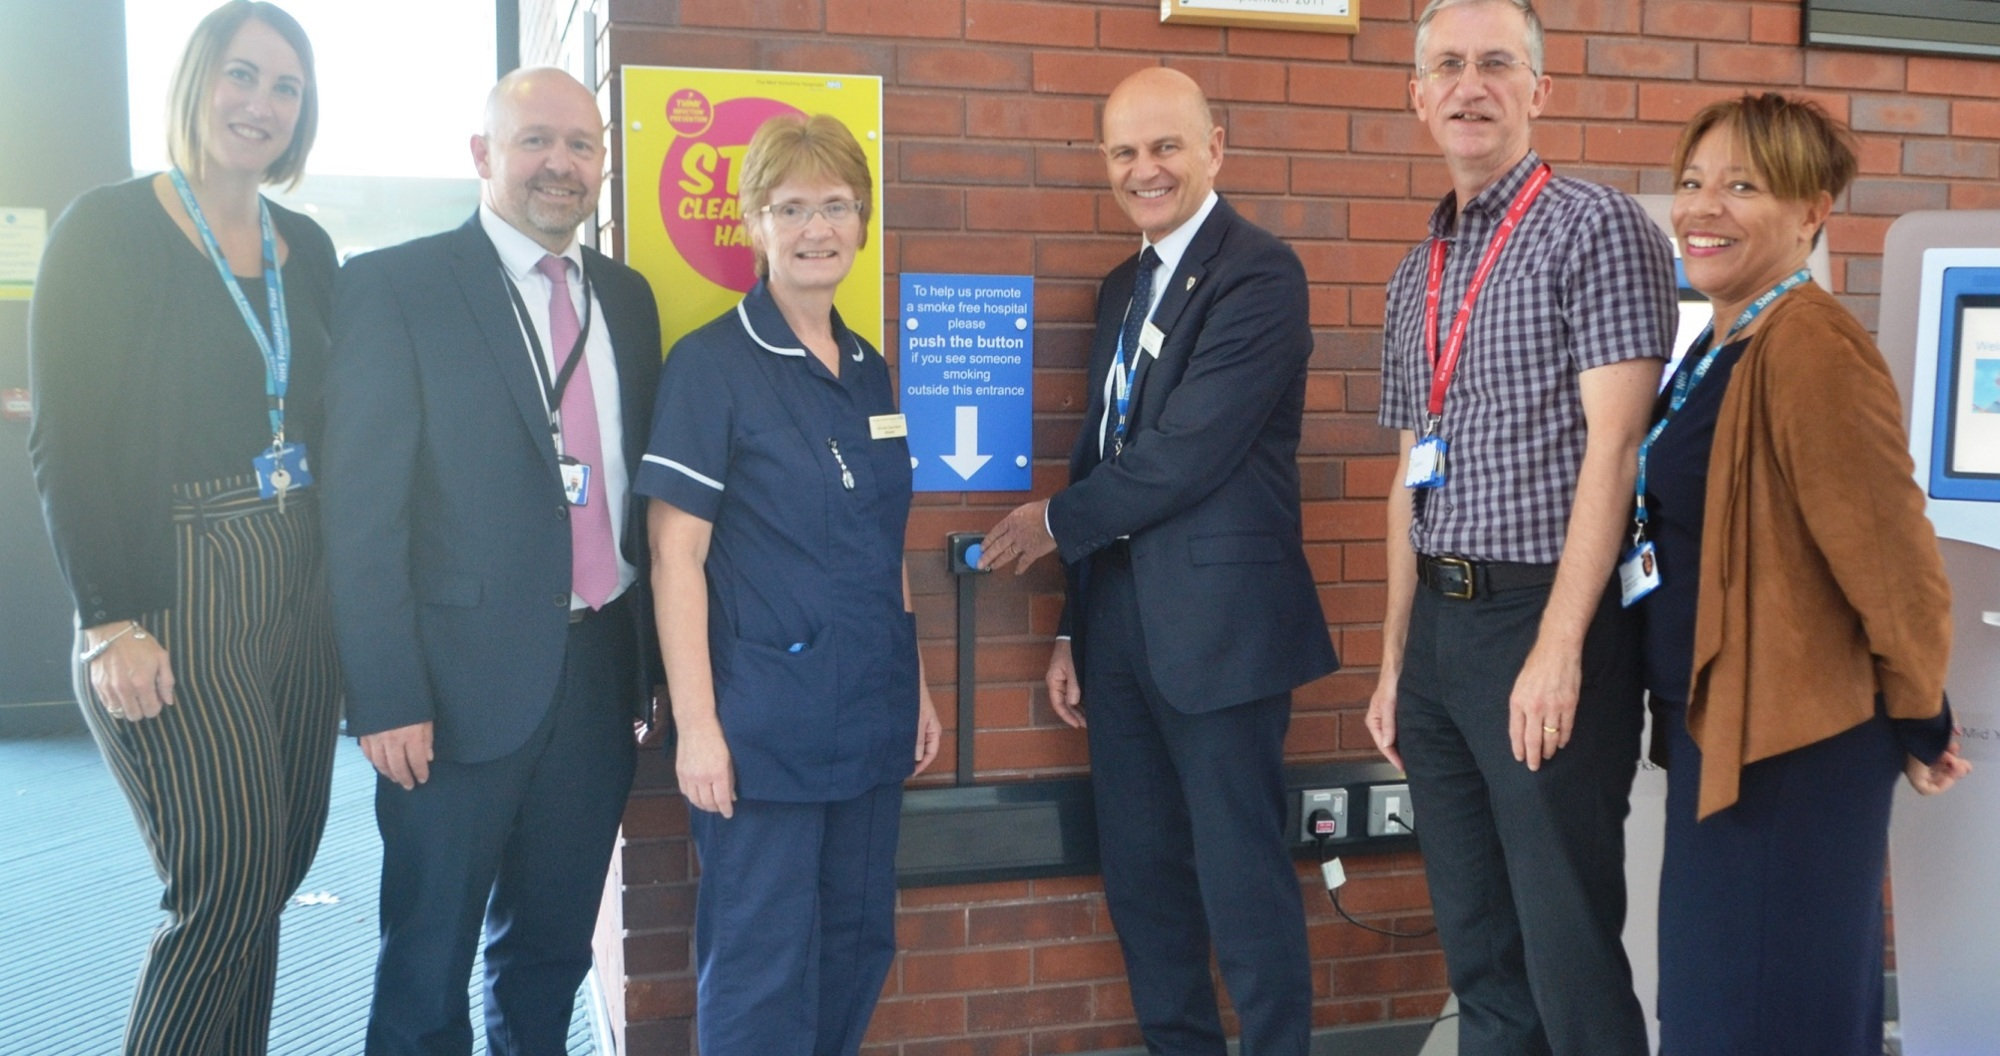 Out for a crafty fag - no Iain Brodie, General Manager of Facilities and colleagues stand by the blue button at Pinderfields Hospital which when pressed will cause smokers to be shouted at to put their cigarettes out